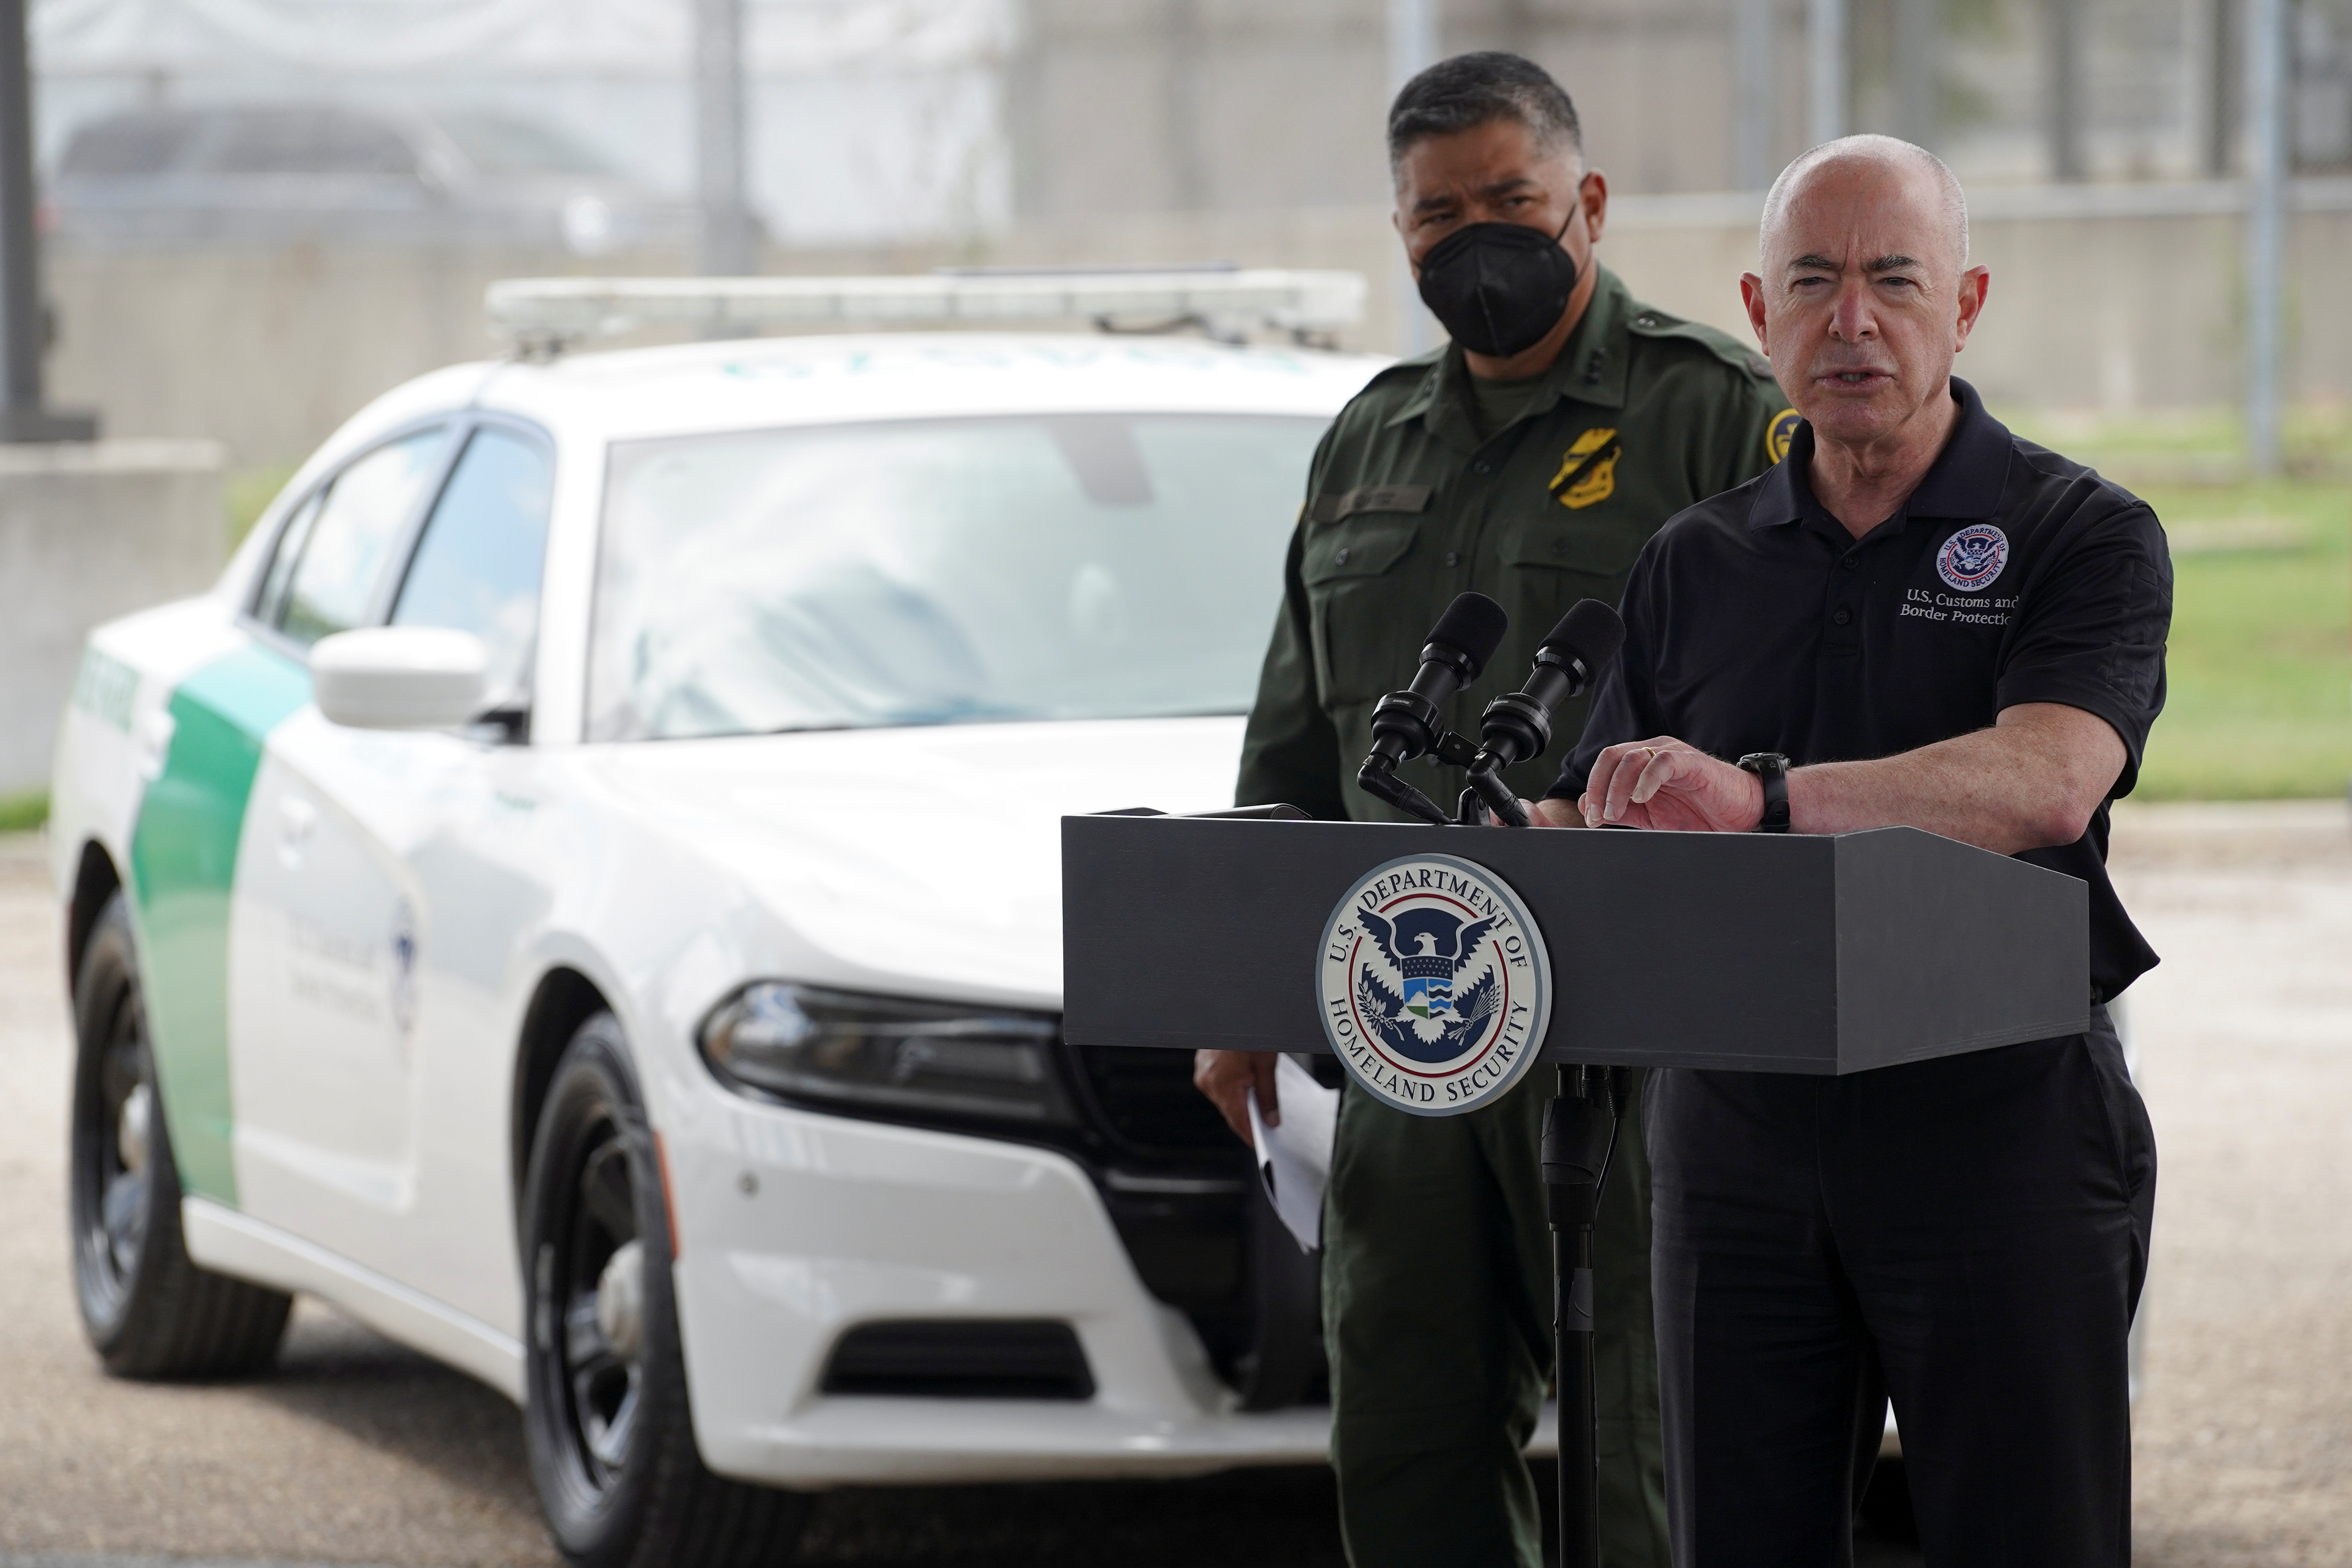 U.S. Secretary of Homeland Security Alejandro Mayorkas attends a news conference along with U.S. Border Patrol (USBP) Deputy Chief Raul Ortiz, who is soon to be appointed as USBP Chief, at Border Patrol Fort Brown Station in Brownsville, Texas, U.S., August 12, 2021. REUTERS/Go Nakamura